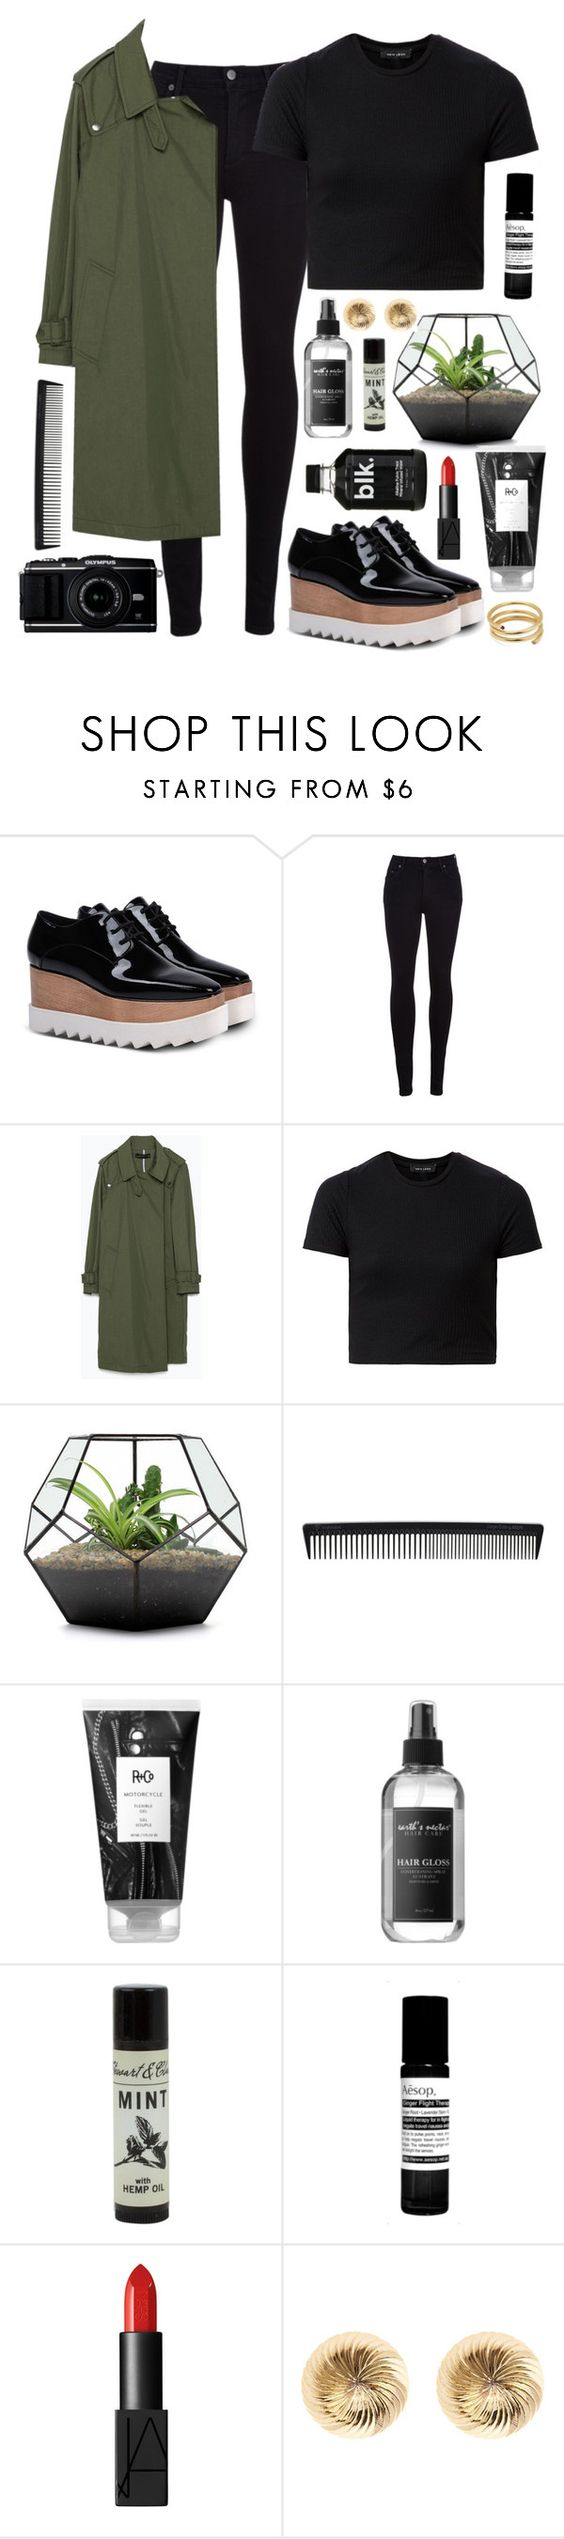 """stellamccartney x zara"" by annamausi ❤ liked on Polyvore featuring STELLA McCARTNEY, Citizens of Humanity, Zara, T3, R+Co, Earth's Nectar, Aesop, NARS Cosmetics, Warehouse and Ella Poe"